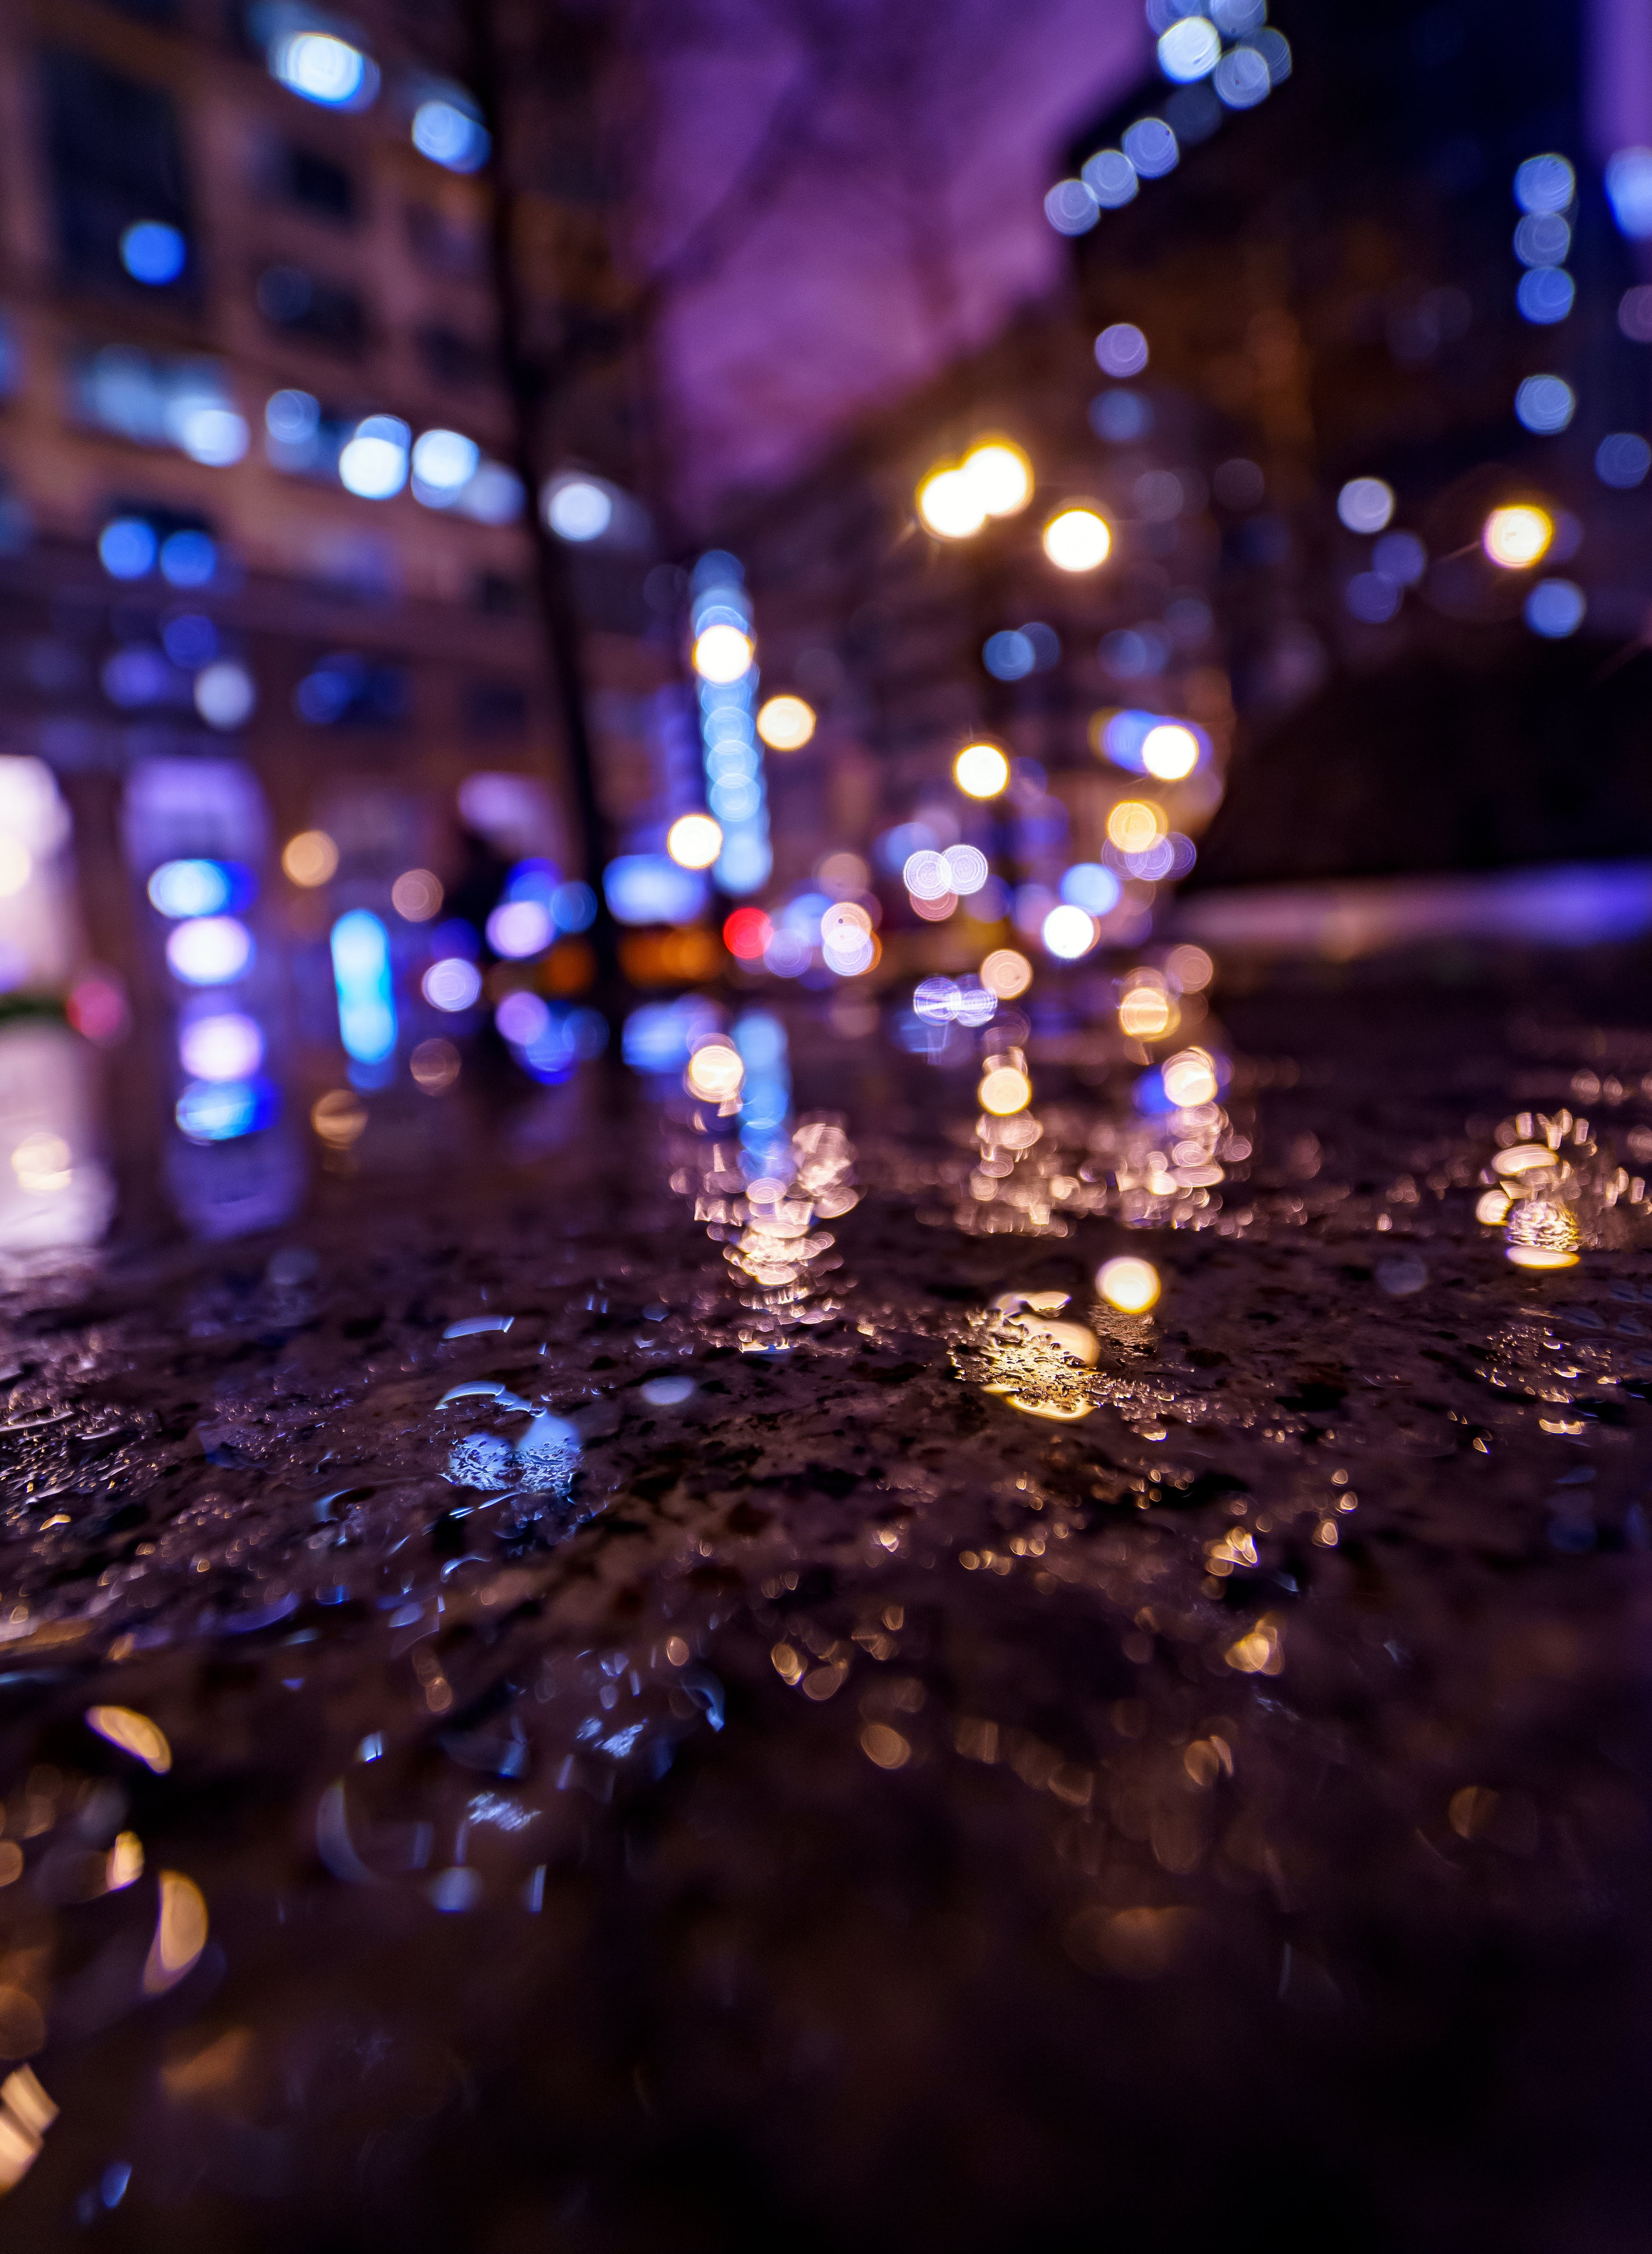 Free stock photo of after the rain, background, background image, bokeh